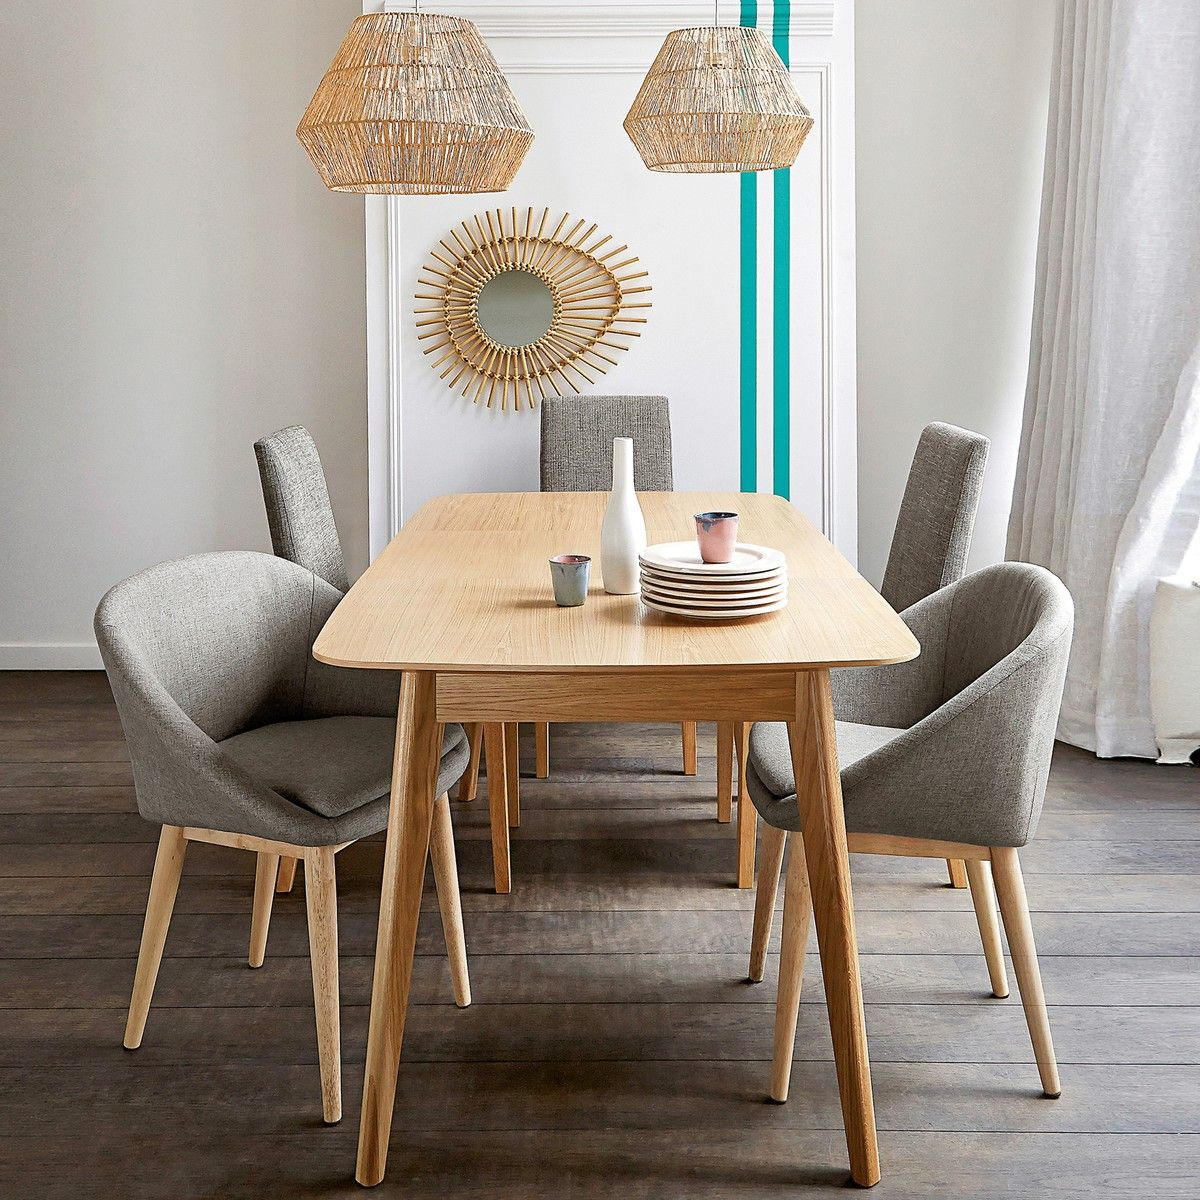 Biface Extendable Dining Table Seats 4 To 10 Minimalist Dining